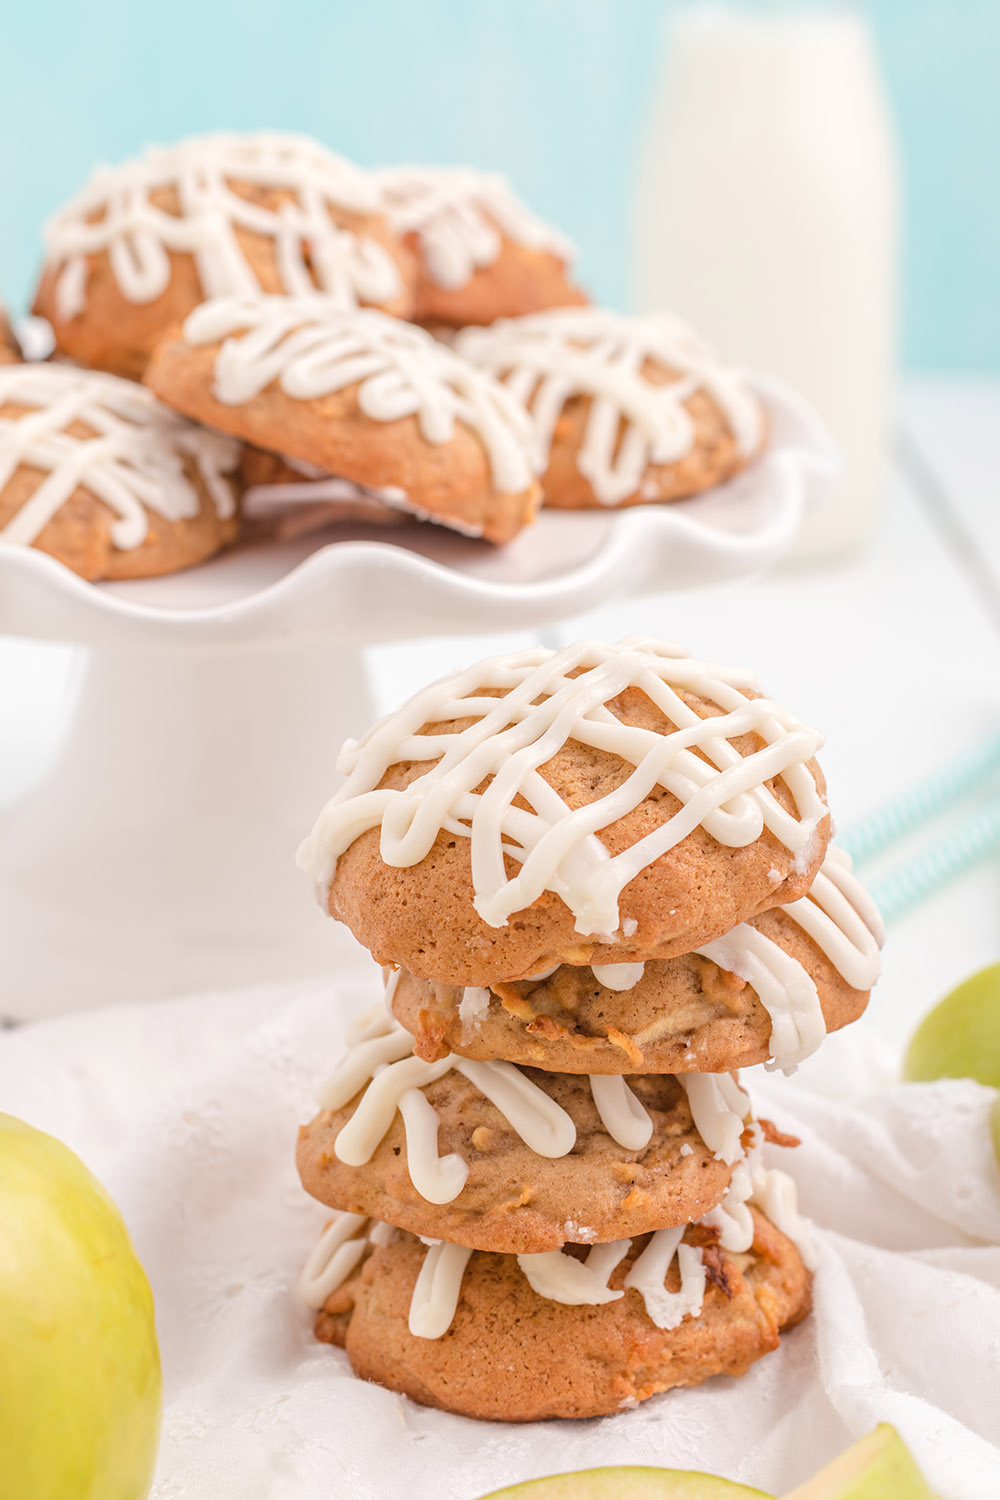 Cookies in a stack and on a tray with milk and apples.